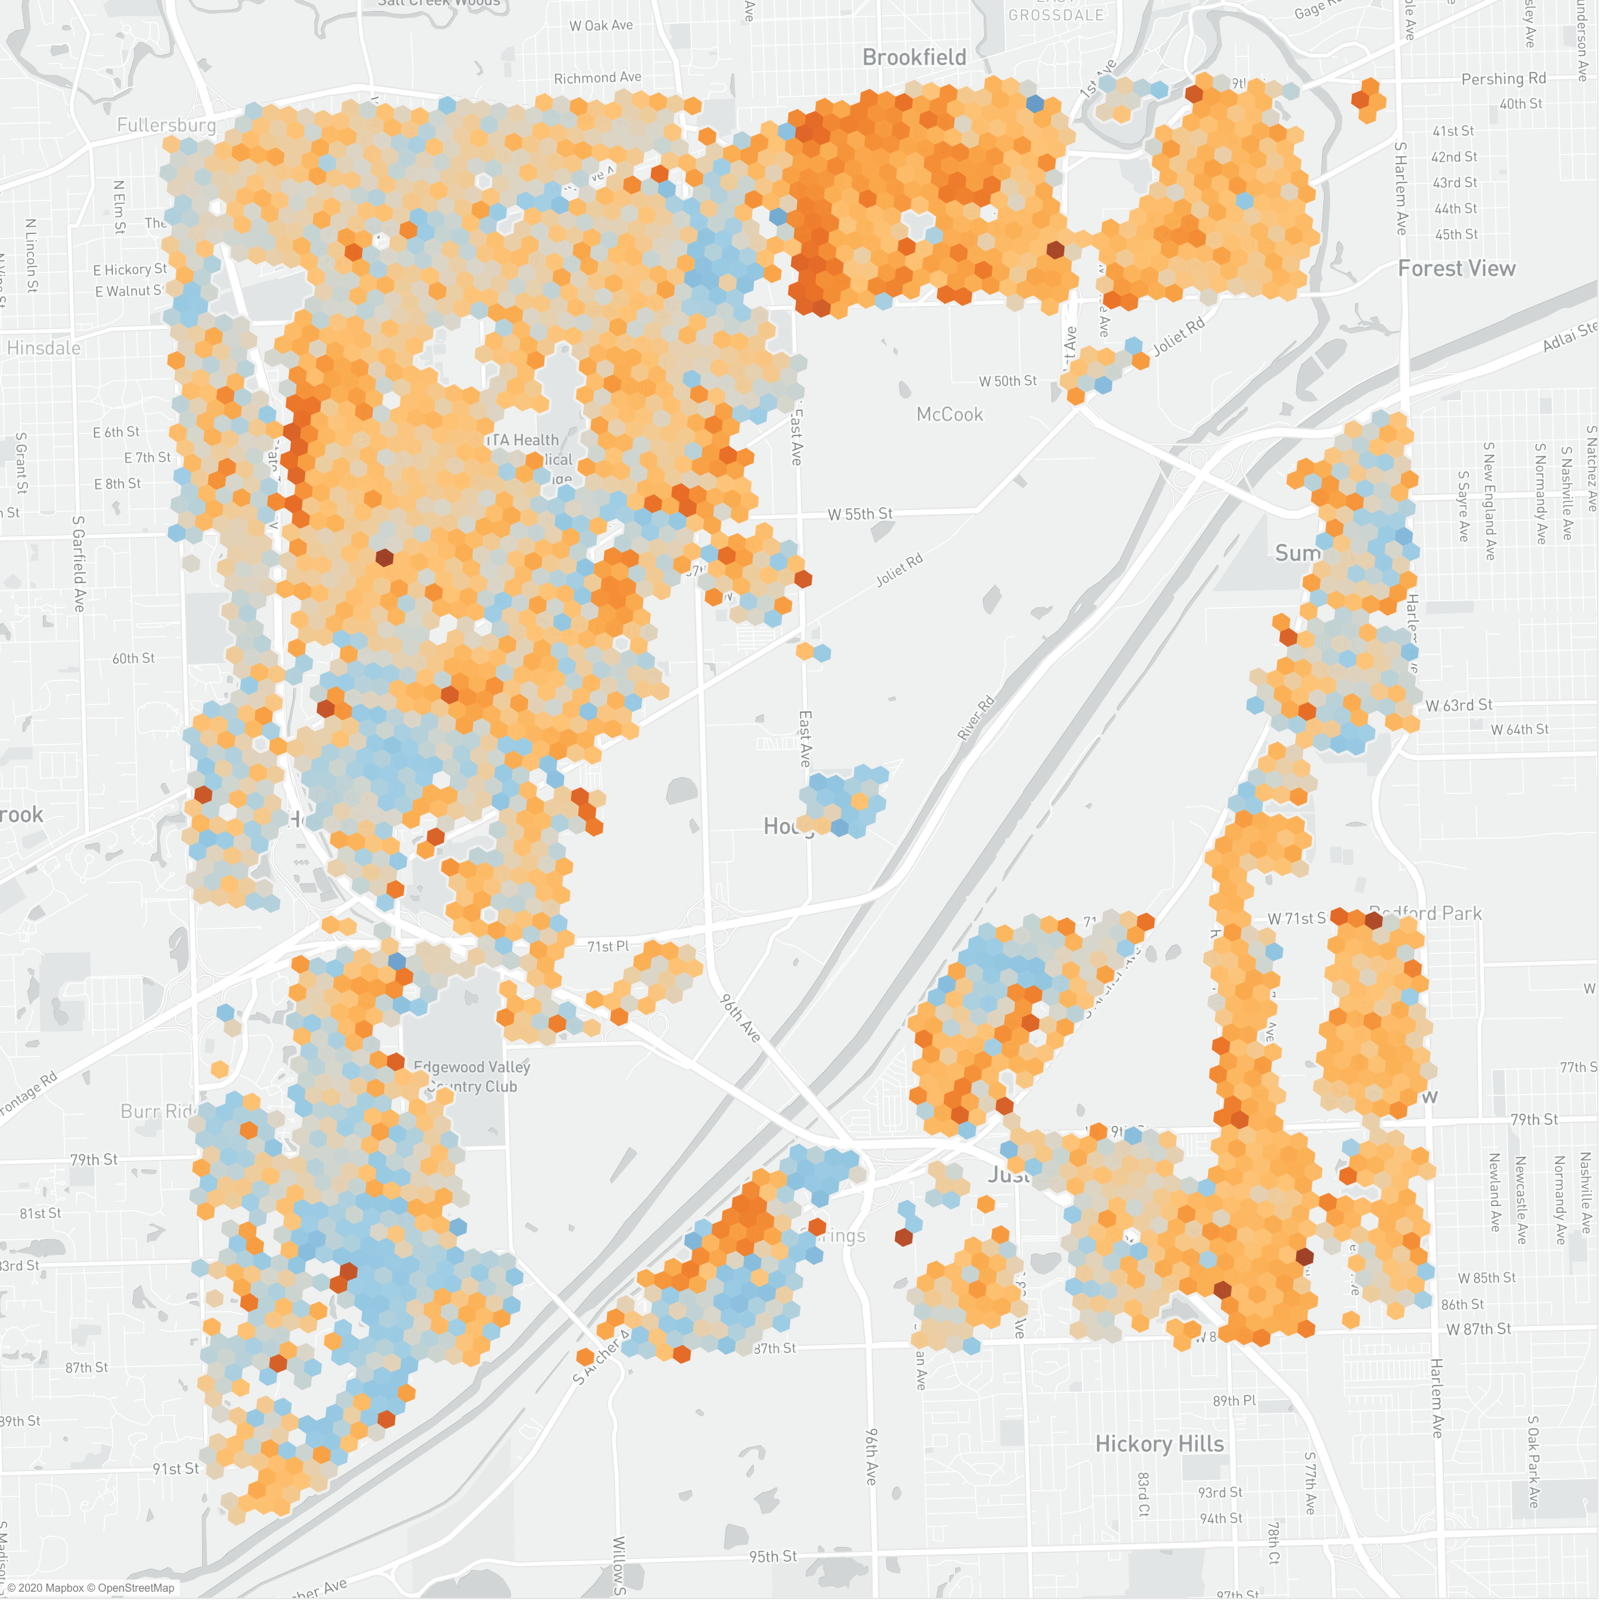 map of the year over year property assessment changes in lyons township in cook county illinois. 66% of the residential buildings are red hexagons indicating an increase in assessed value.